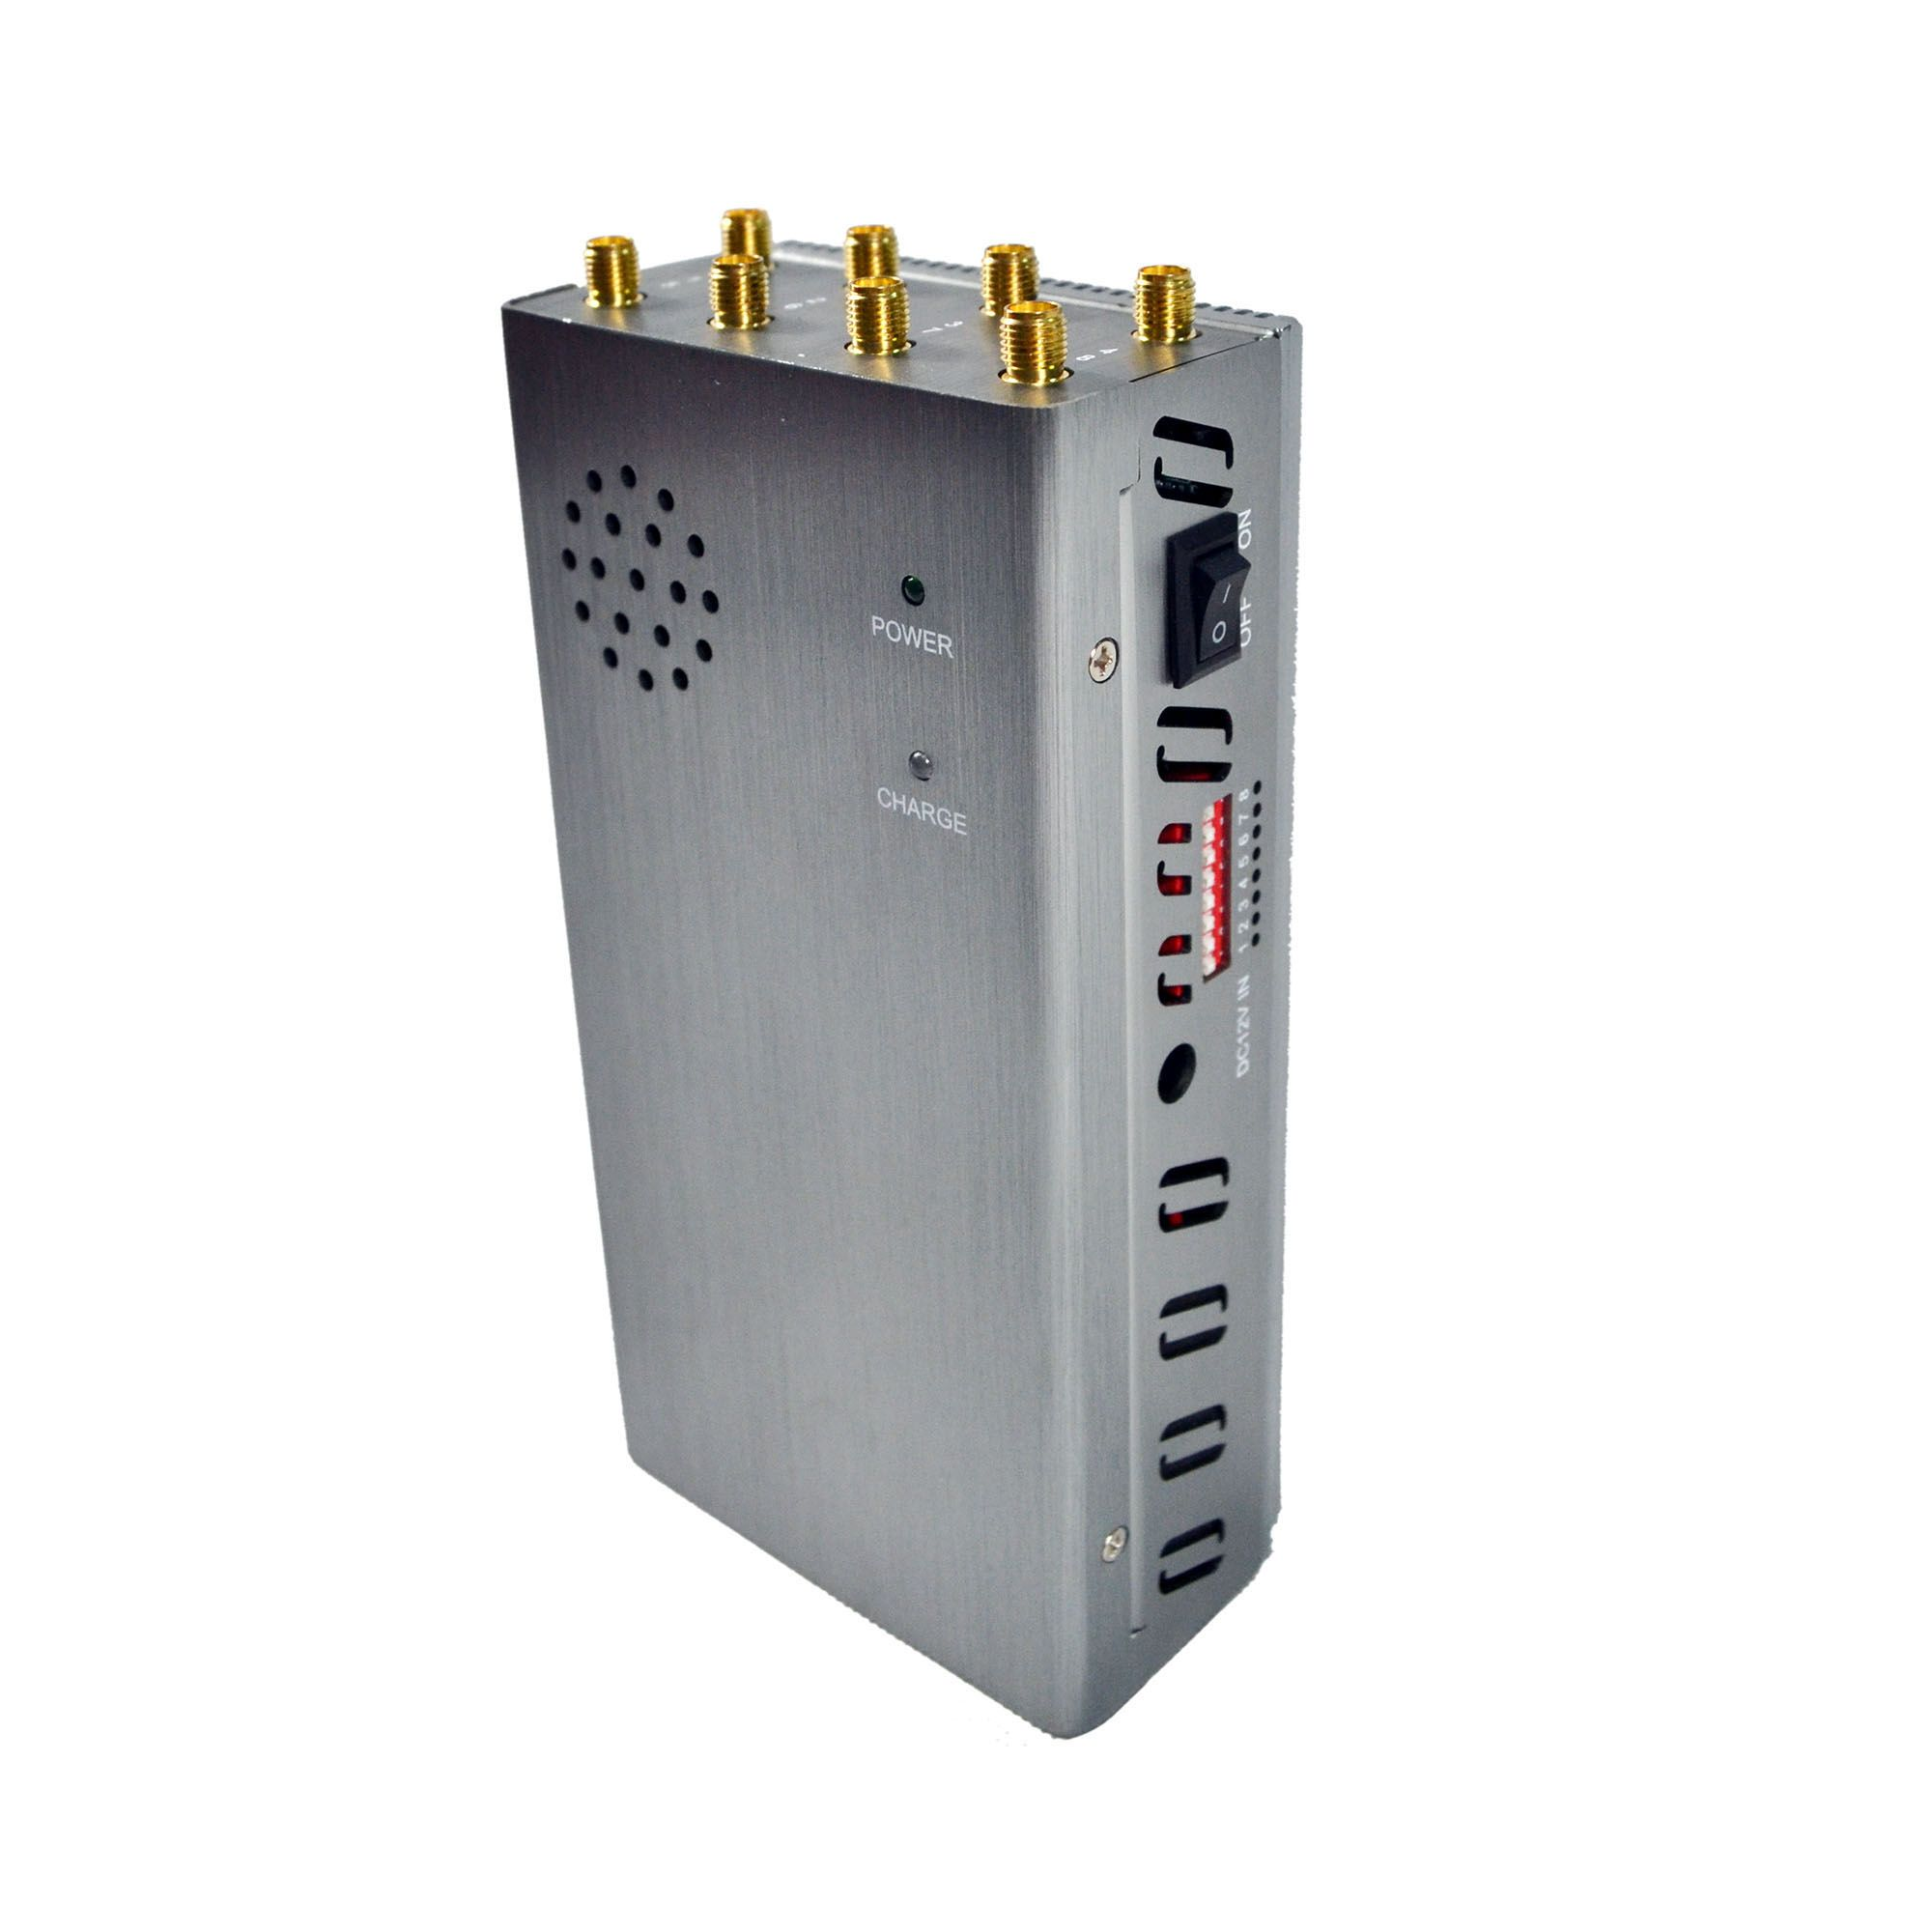 cell phone signal jammer device